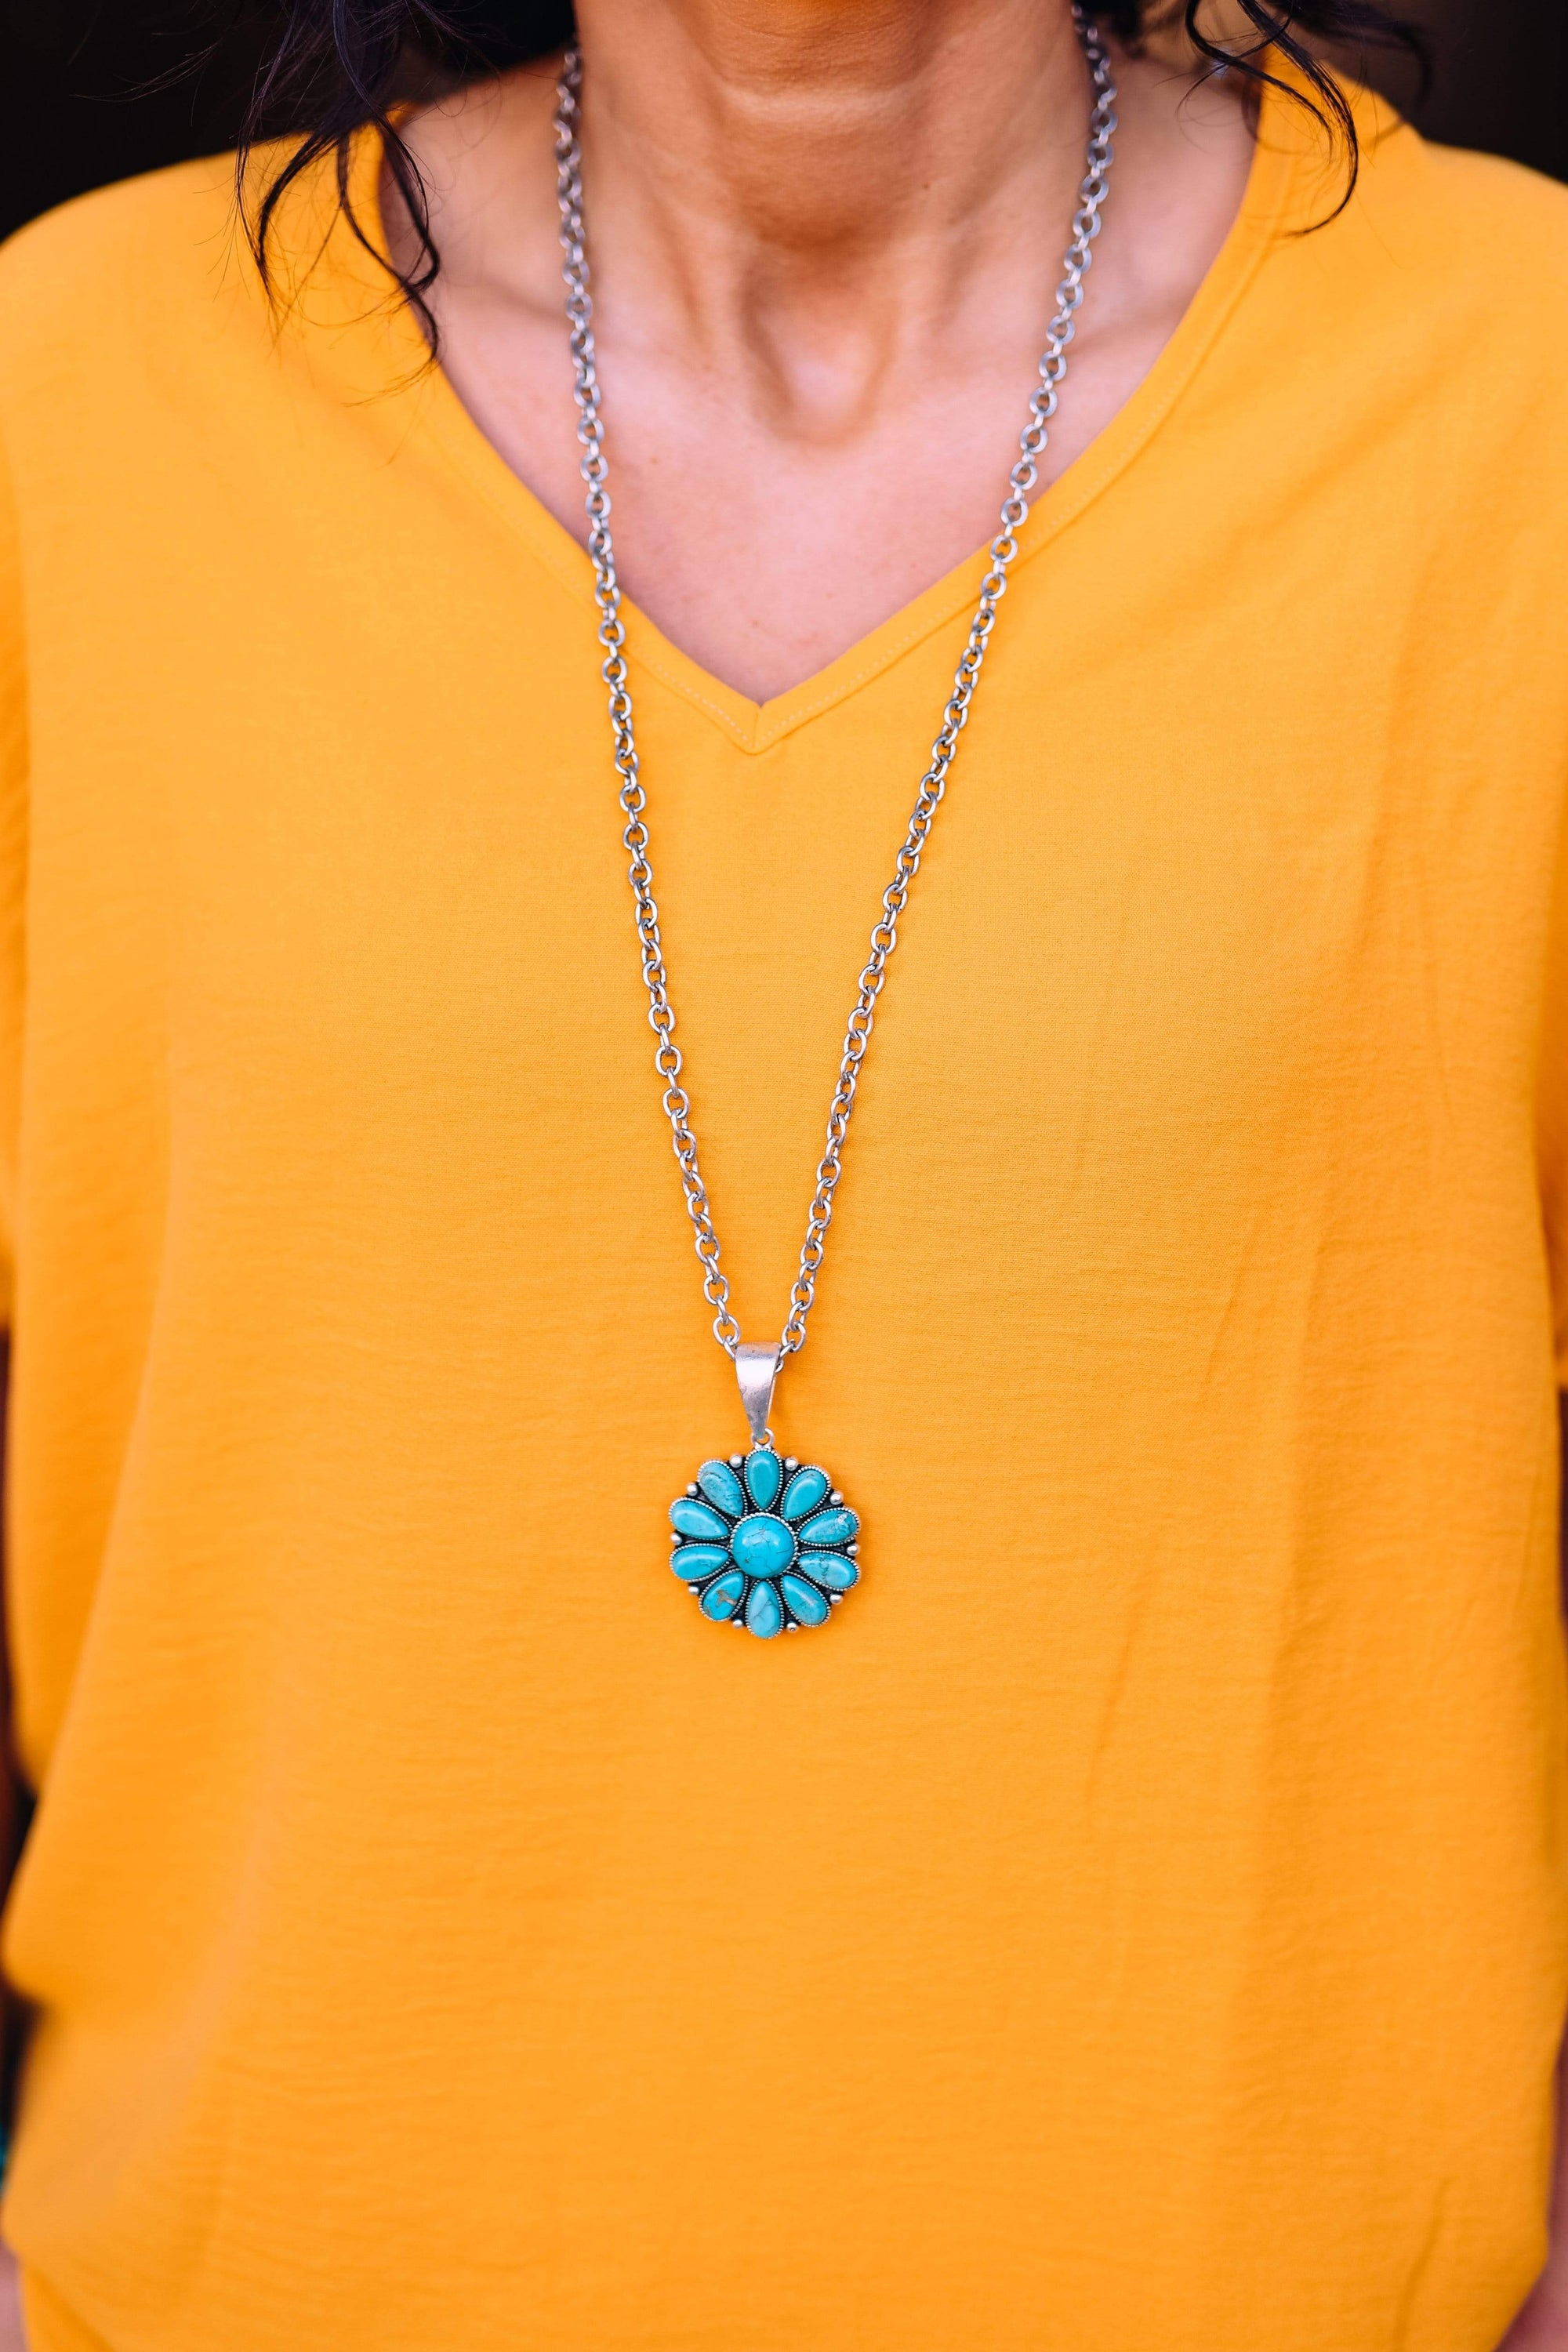 Accessorize In Style Fashion Necklaces Fashion Turquoise Blossom Pendant on a Chain